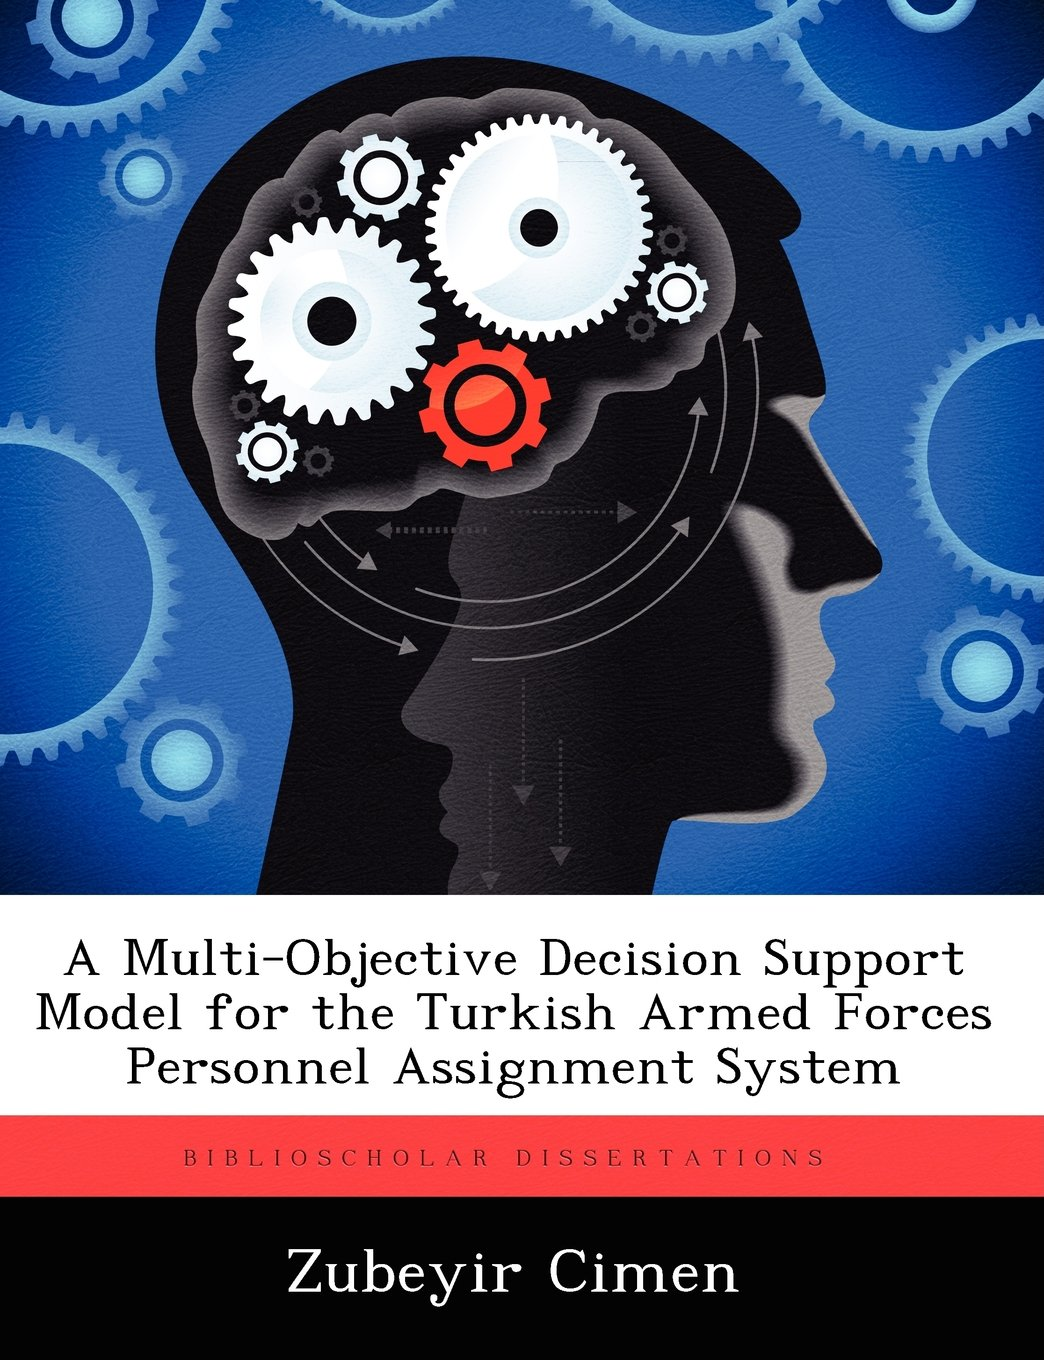 Download A Multi-Objective Decision Support Model for the Turkish Armed Forces Personnel Assignment System ebook